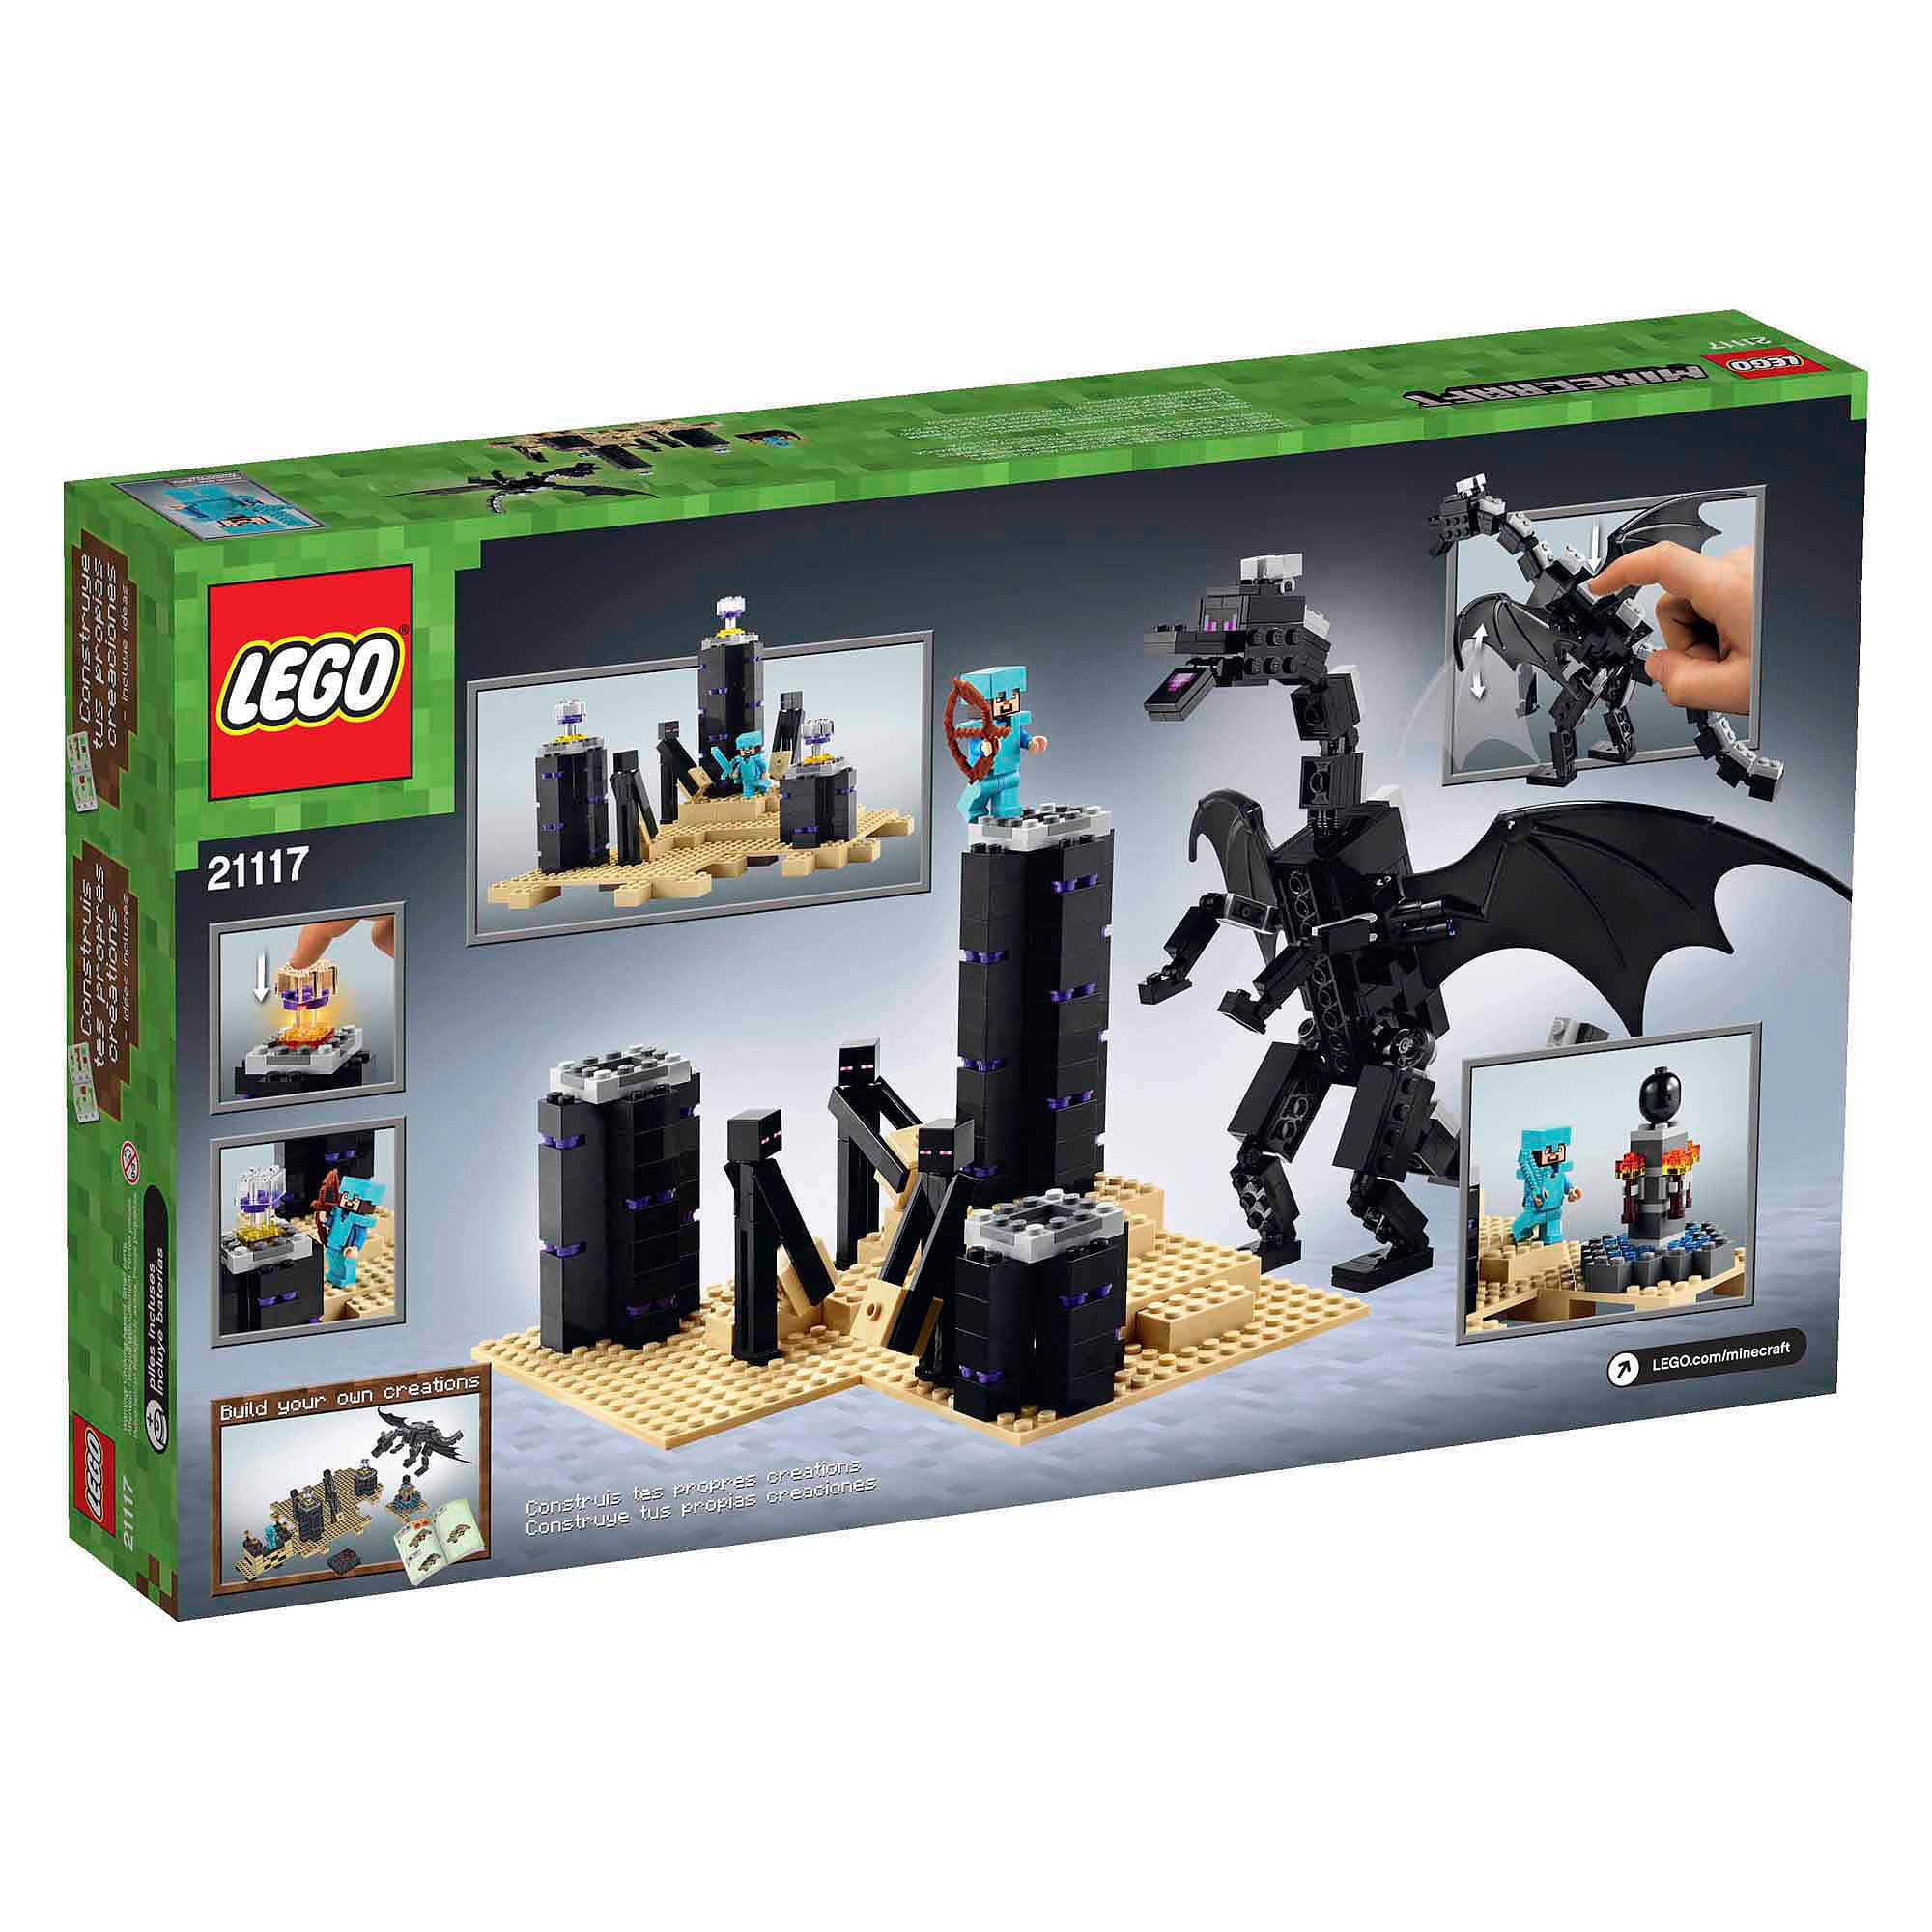 Lego Minecraft The Ender Dragon by LEGO Systems, Inc.